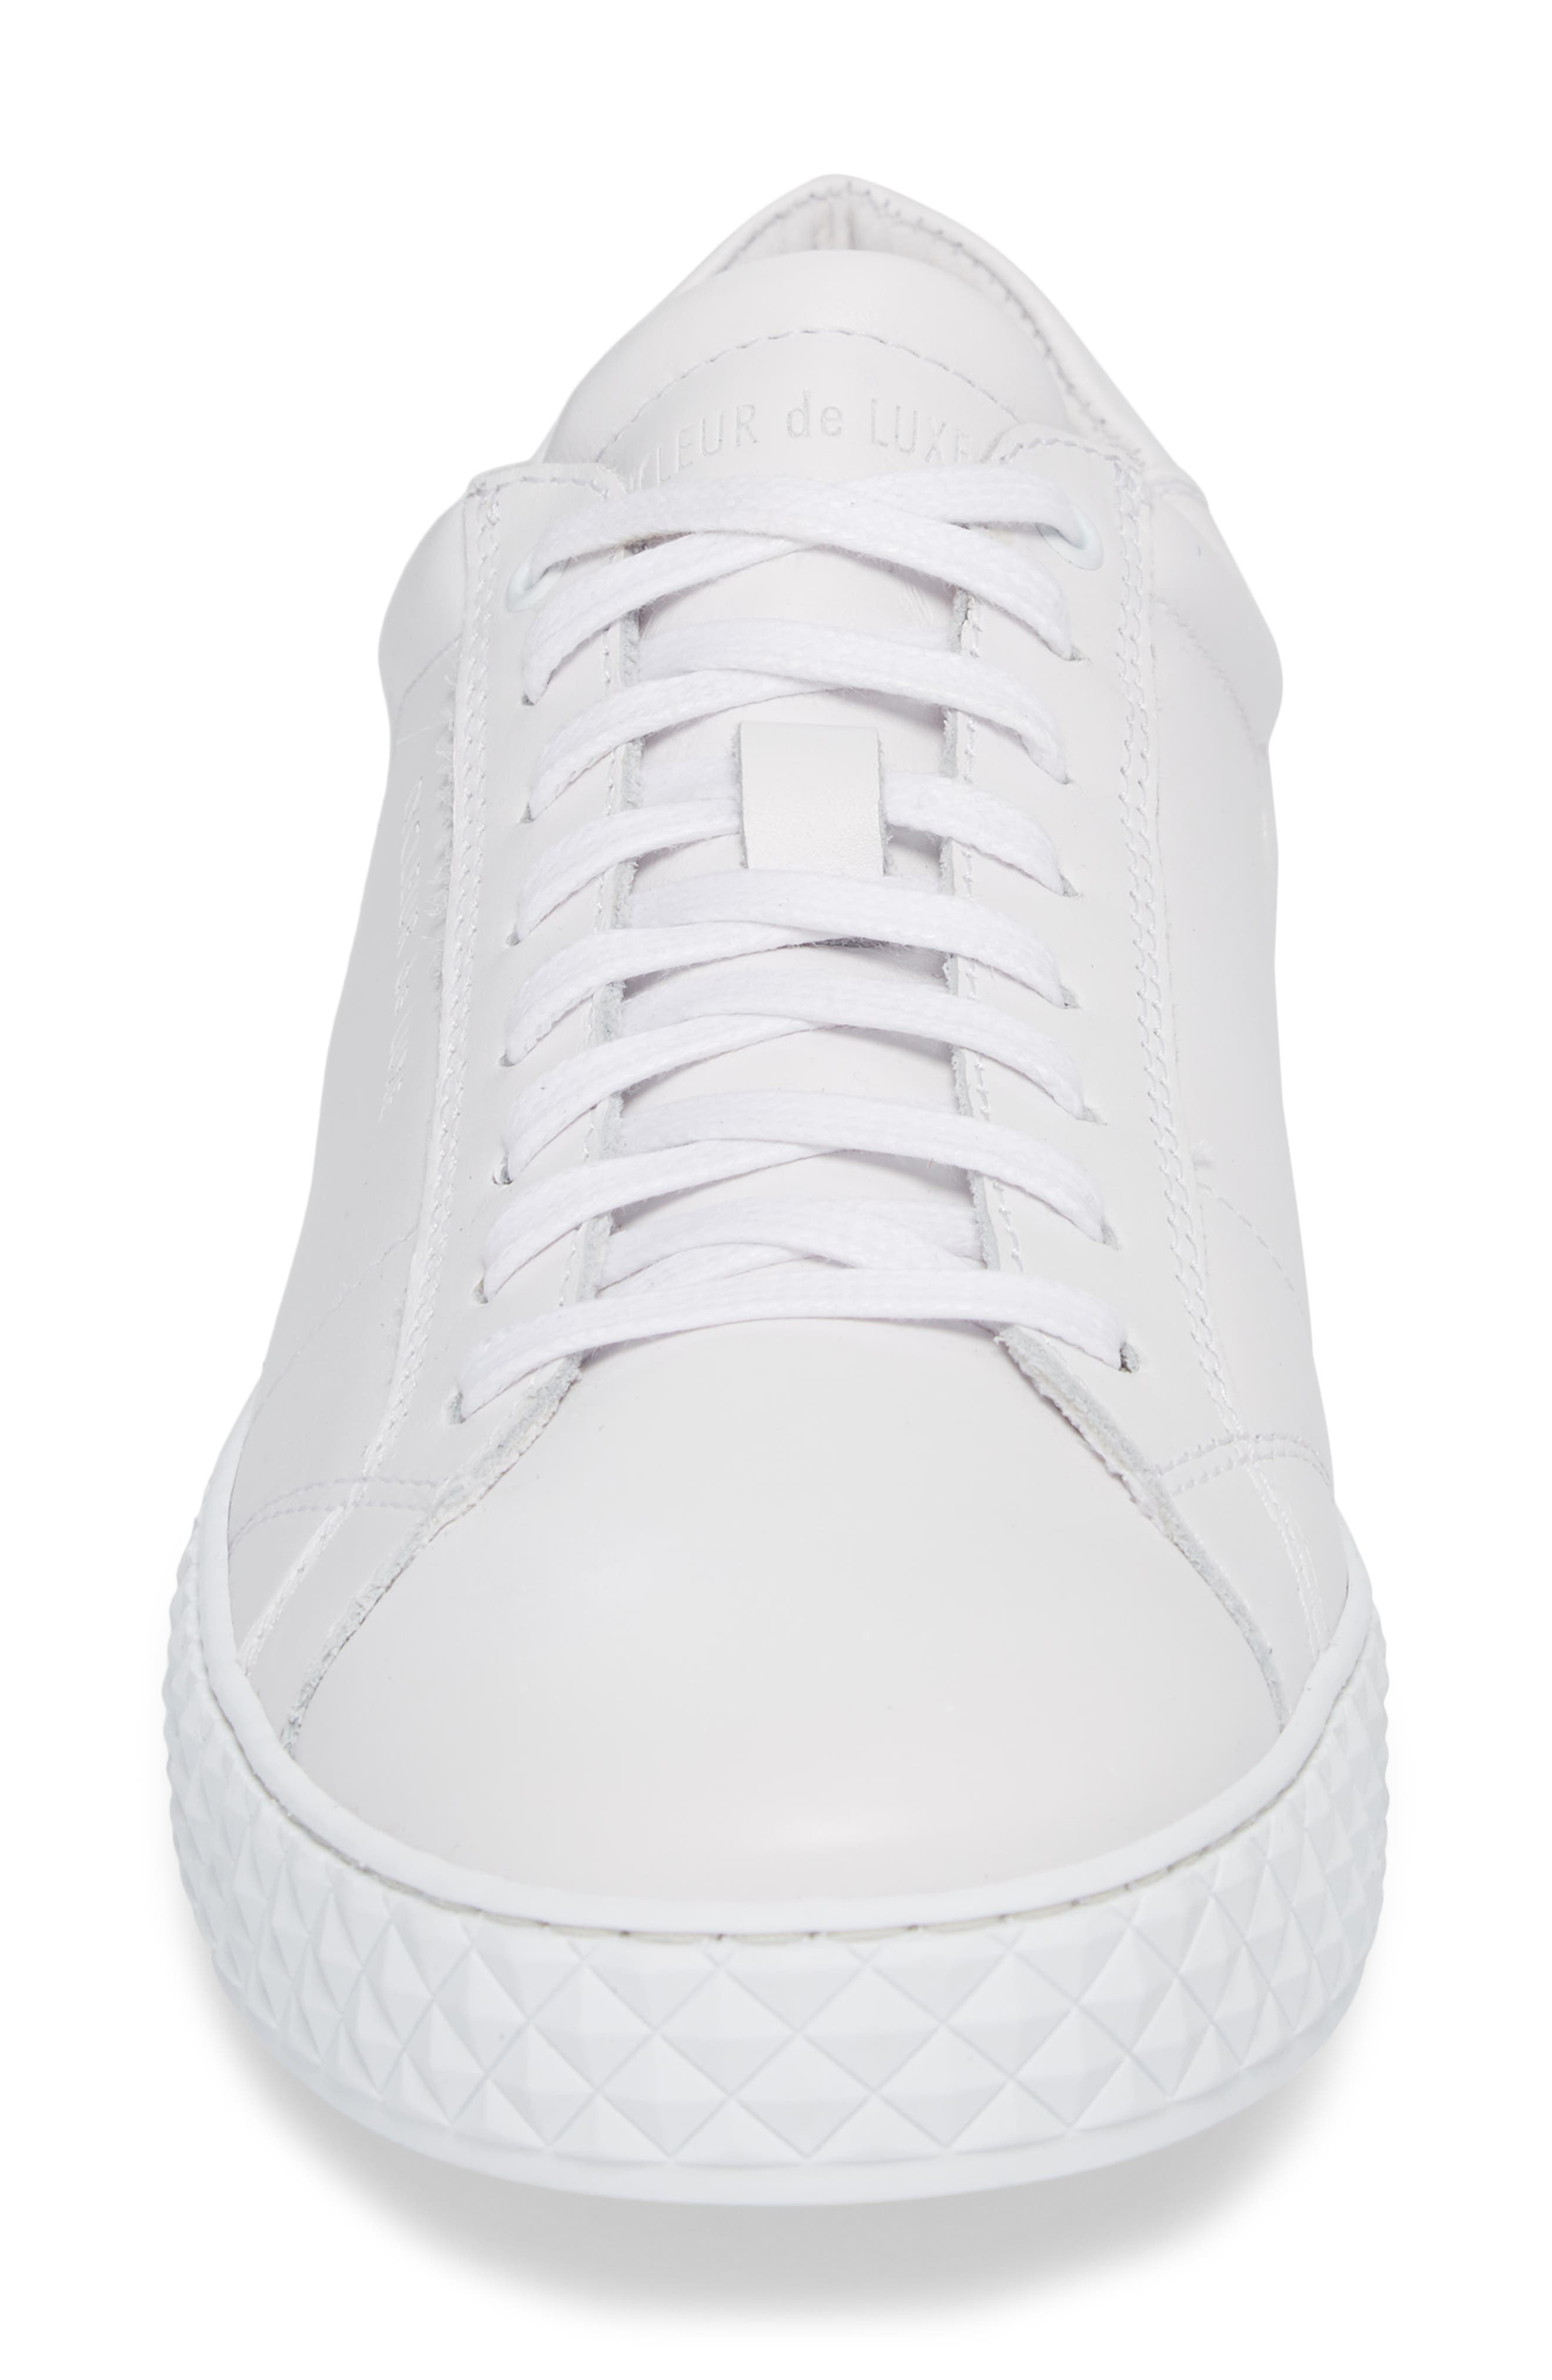 Bratislava Low Top Sneaker,                             Alternate thumbnail 4, color,                             OPTIC WHITE/ RED/ NAVY LEATHER